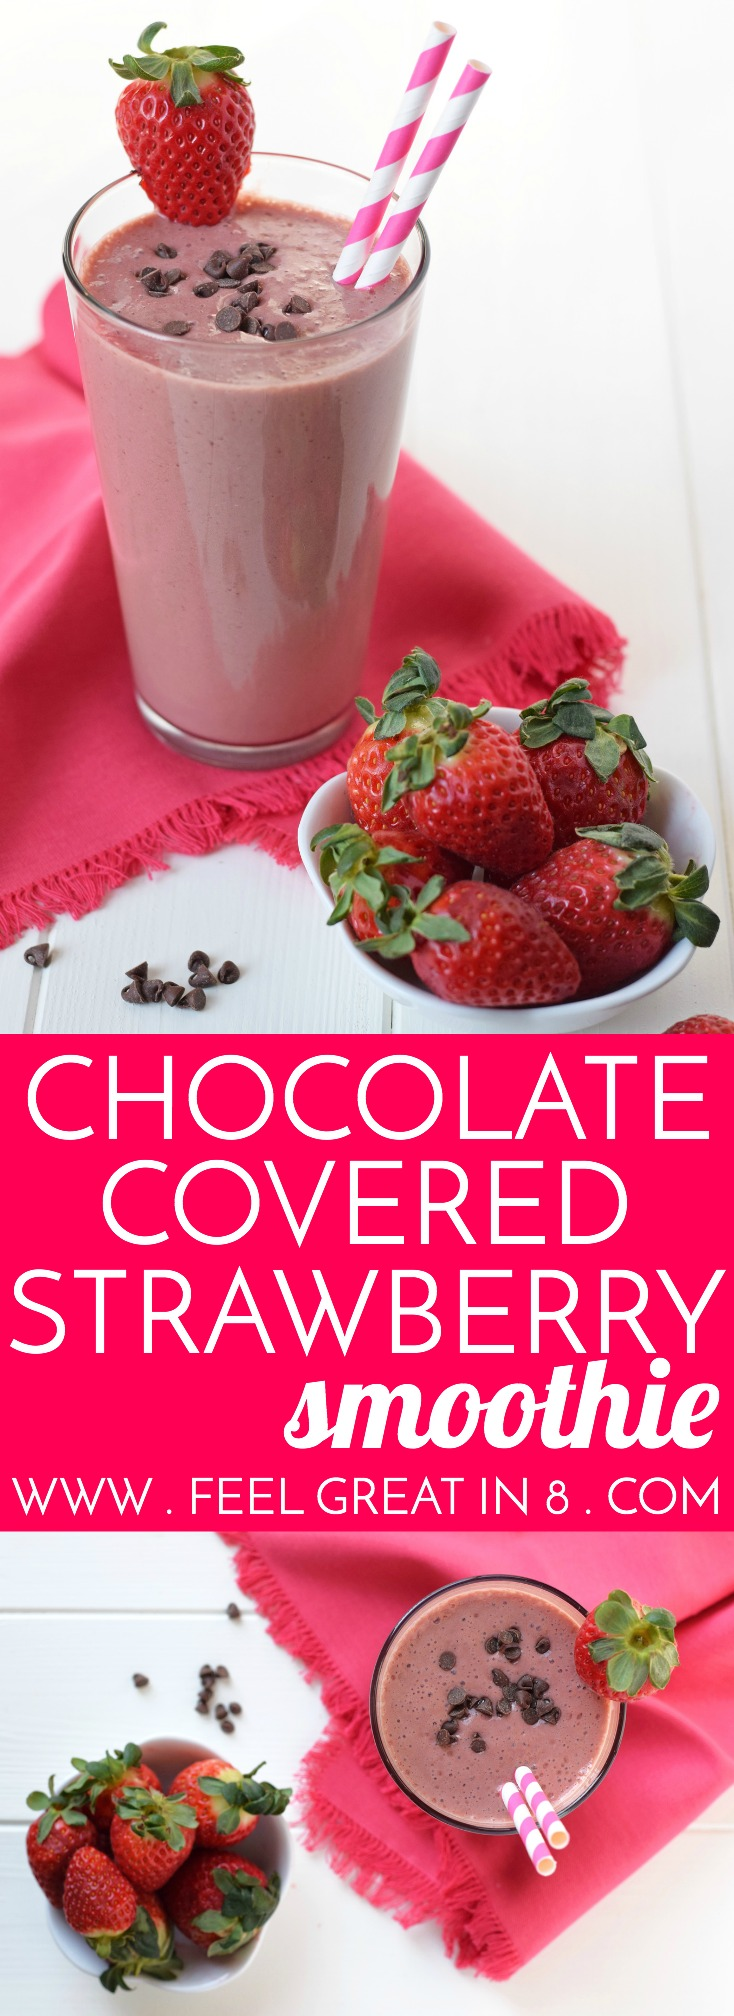 Chocolate Covered Strawberry Smoothie - All the delicious flavors of a chocolate covered strawberry in a dessert that's healthy enough to be breakfast! Clean eating, refined sugar free and made with only 4 healthy real food ingredients!